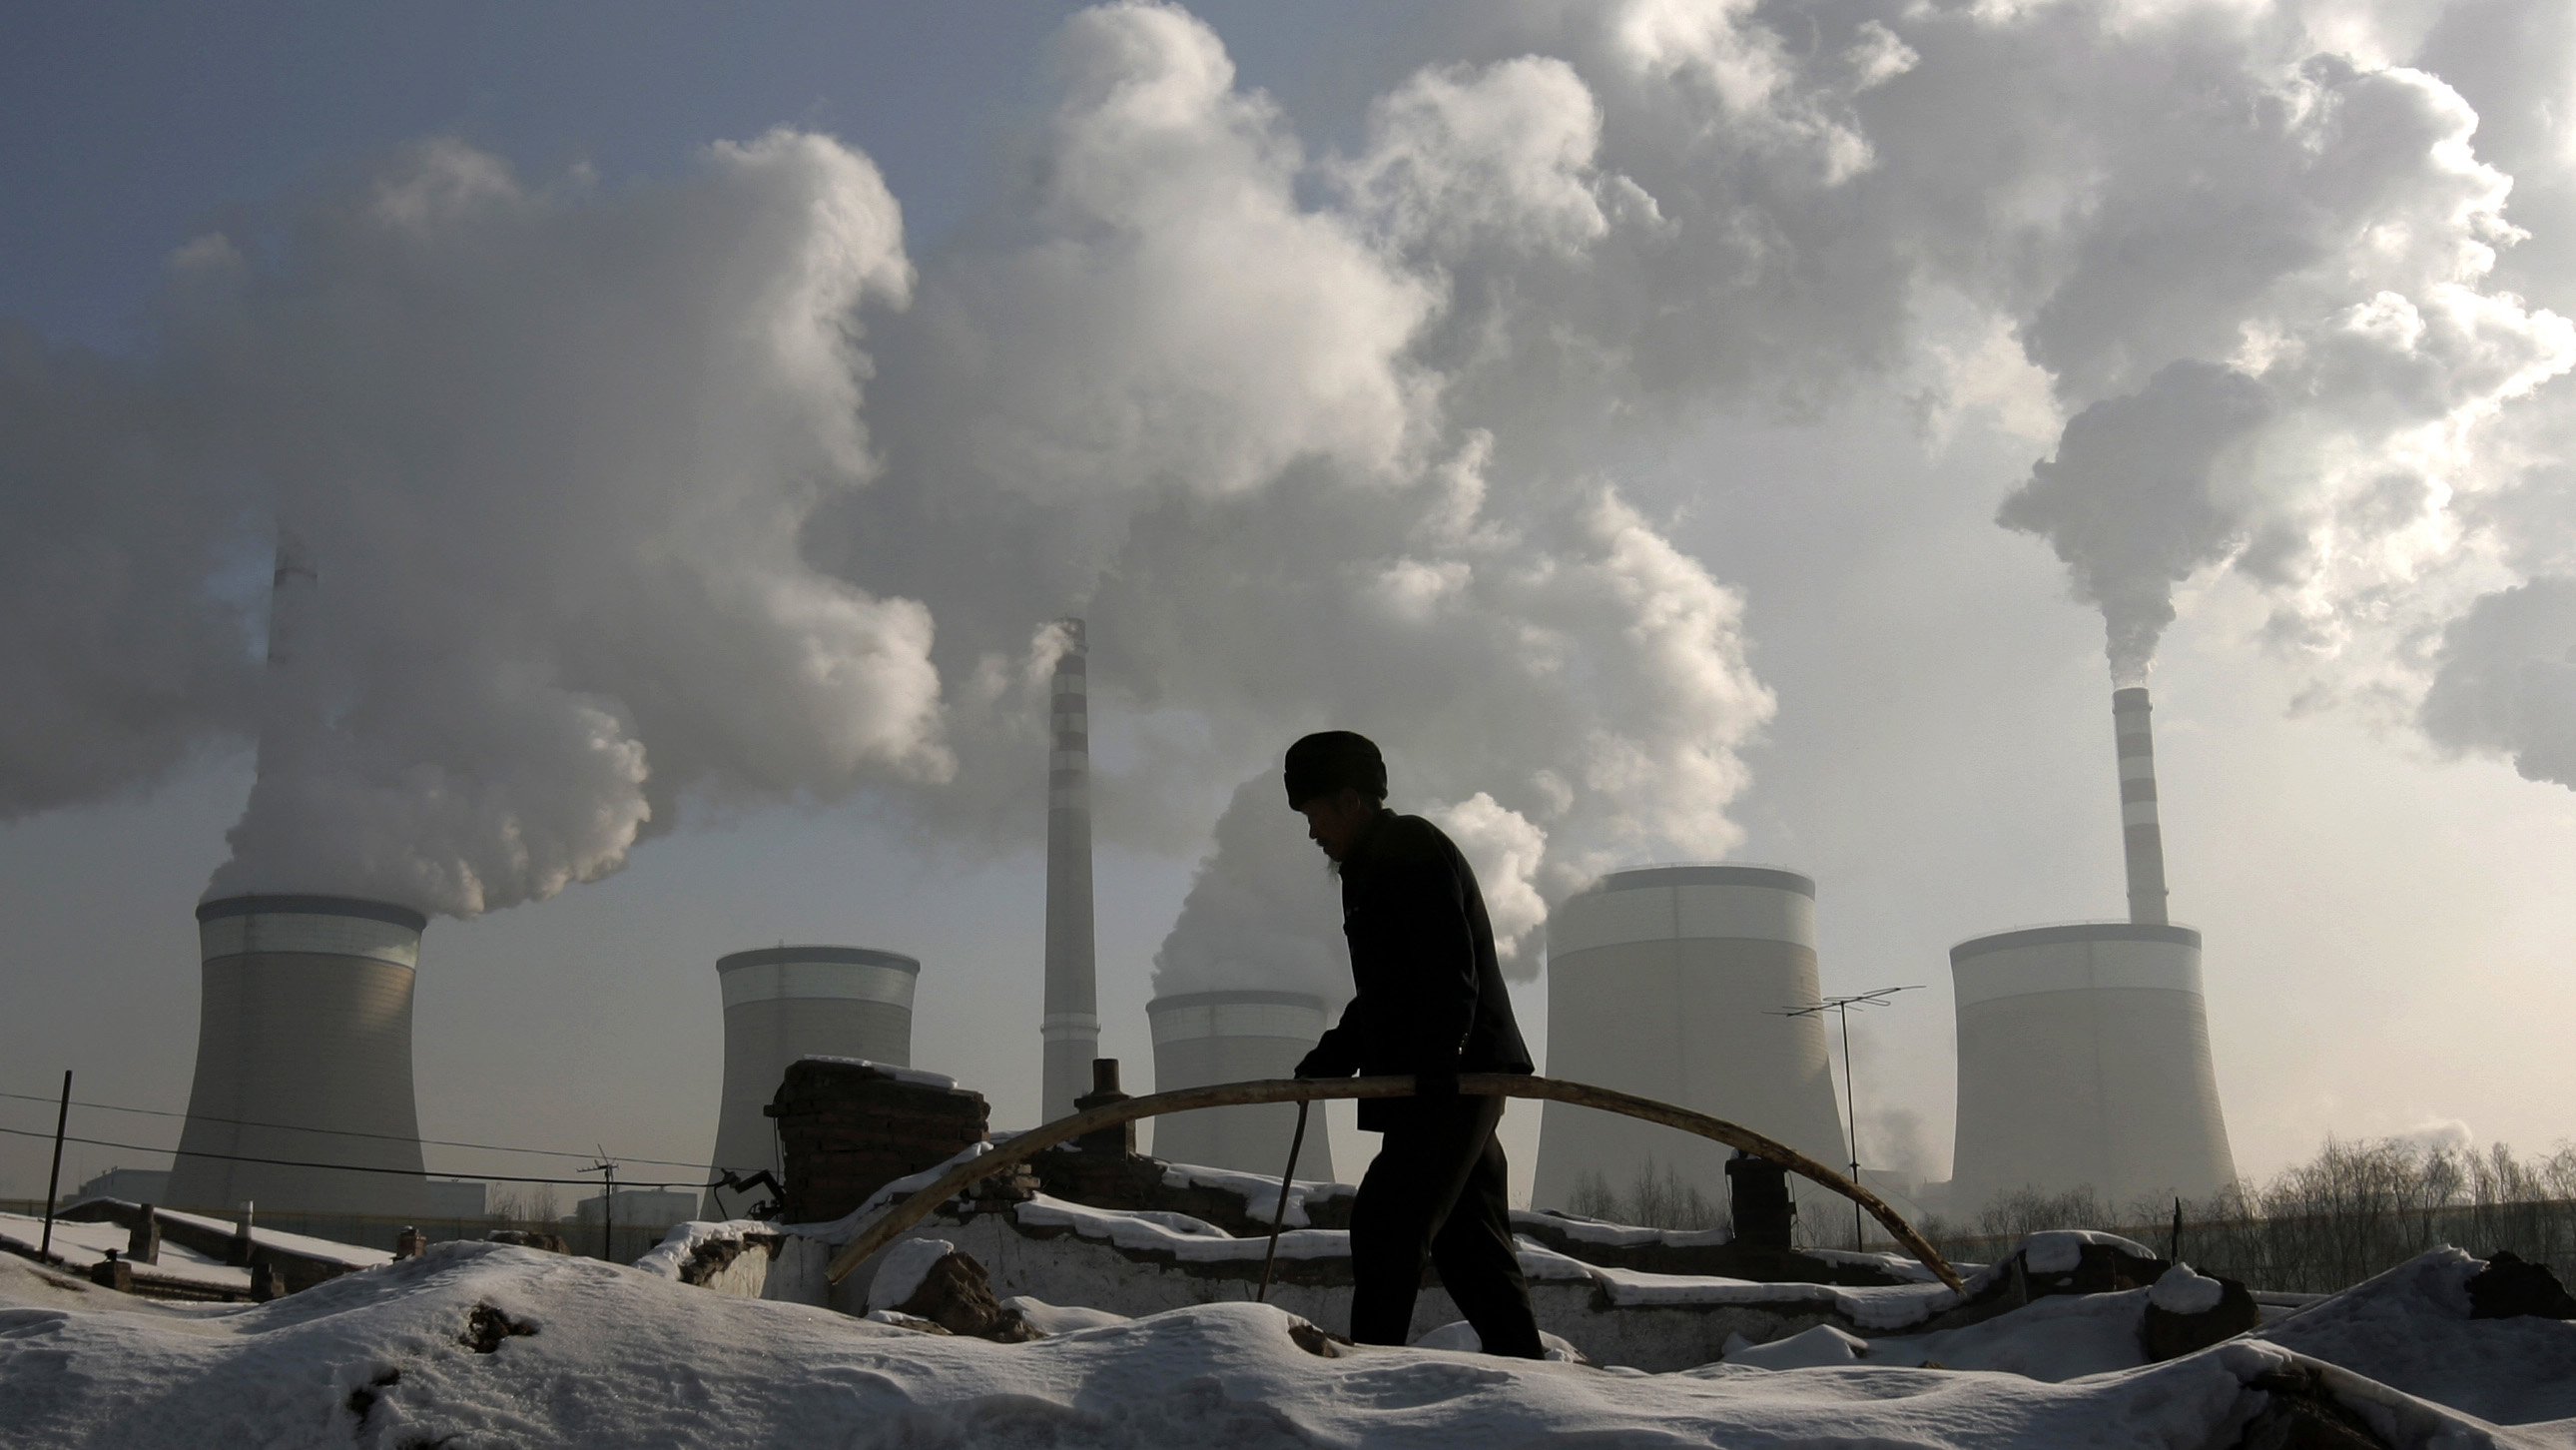 A villager walks in front of a coal-fired power plant on the outskirts of Datong, Shanxi province, November 20, 2009. China will raise power prices for non-residential users by around 5.4 percent from Friday, the first rise since July 2008, to compensate grid firms that lost out because of a government cap on prices. REUTERS/Jason Lee (CHINA ENERGY ENVIRONMENT BUSINESS IMAGES OF THE DAY) - RTXQXVL